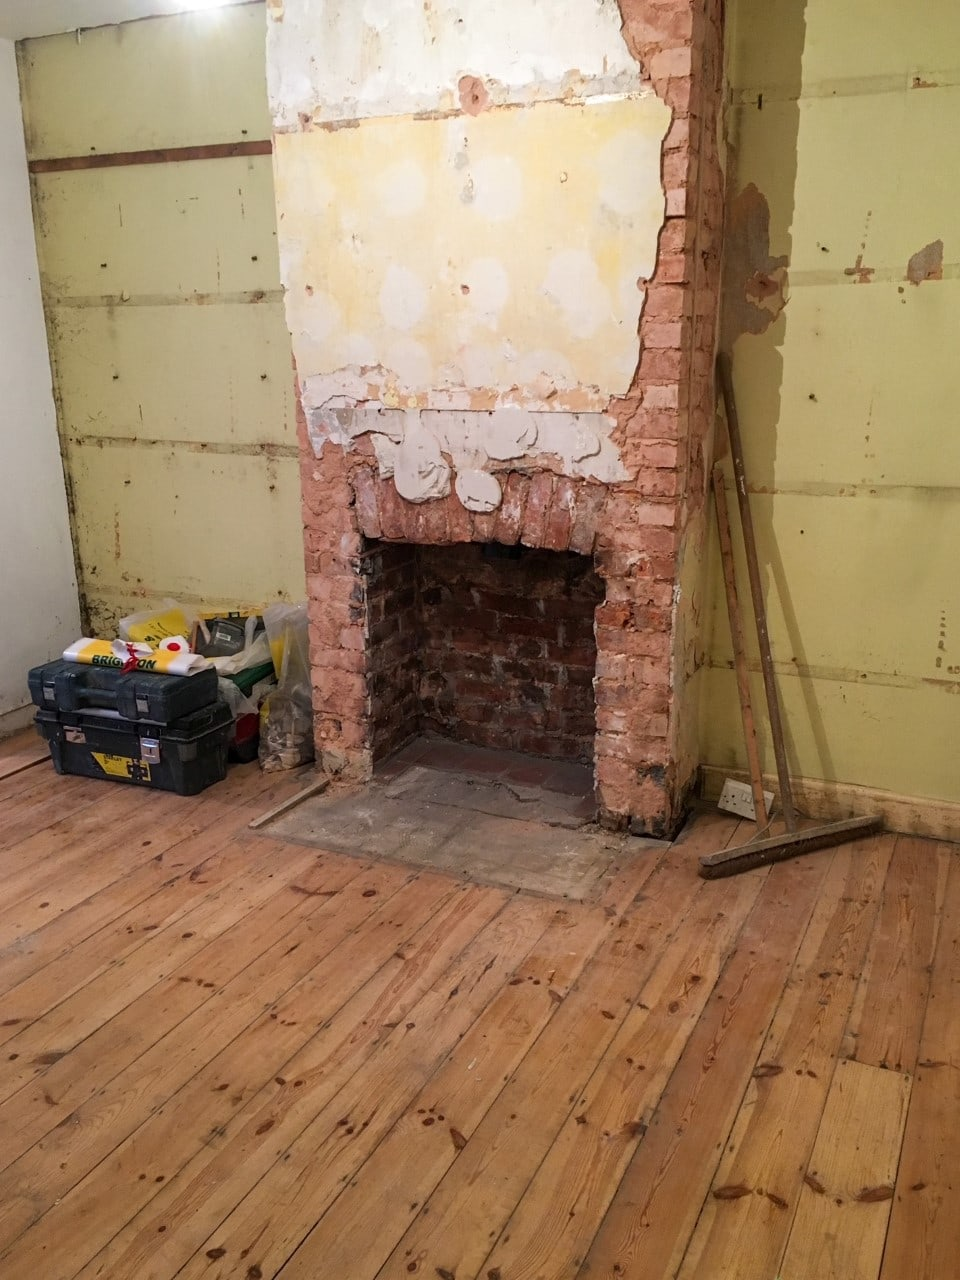 The start of the kitchen renovation with the chimney stack being widened ready for the oven